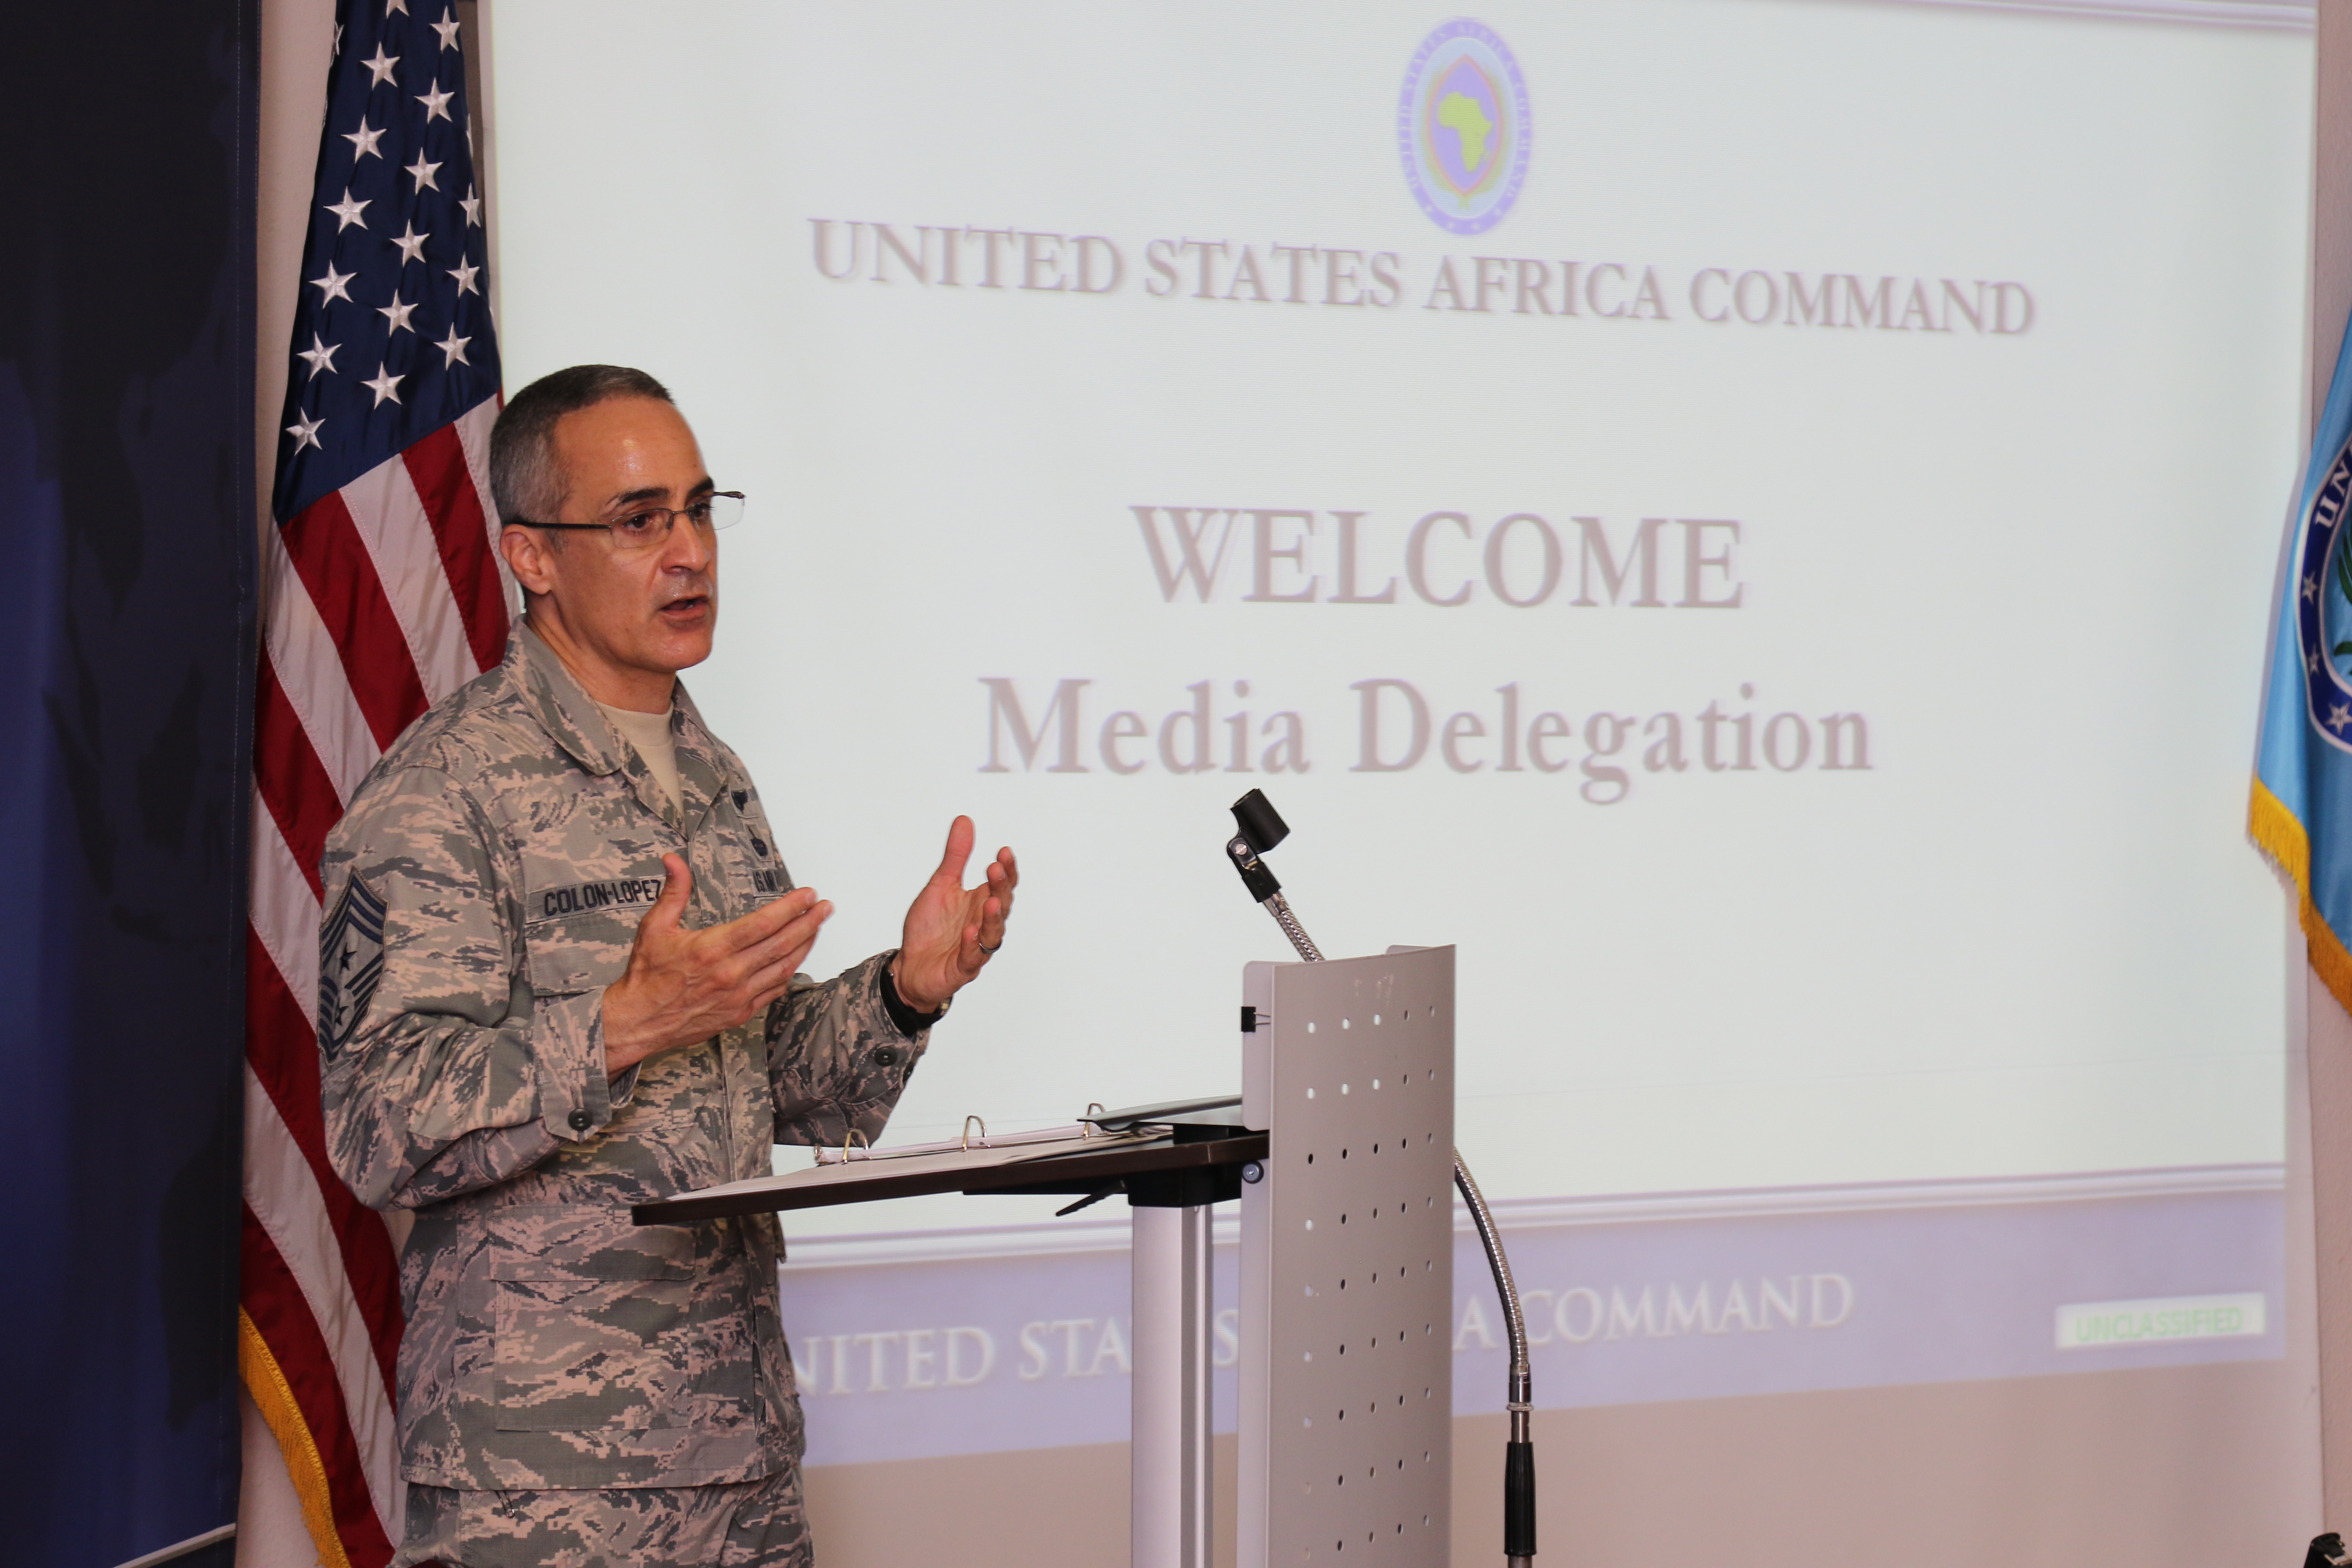 STUTTGART, Germany - U.S. Air Force Chief Master Sgt. Ramon Colon-Lopez, AFRICOM Command Senior Enlisted Leader, meets with media representatives from Somalia, Kenya, Uganda and Ethiopia during an East Africa Media Delegation Aug. 28-31 in Stuttgart, Germany. The event provides an opportunity for media representatives to learn about the command's mission, role, and programs. (U.S. Army photo by Nathan Herring/RELEASED)